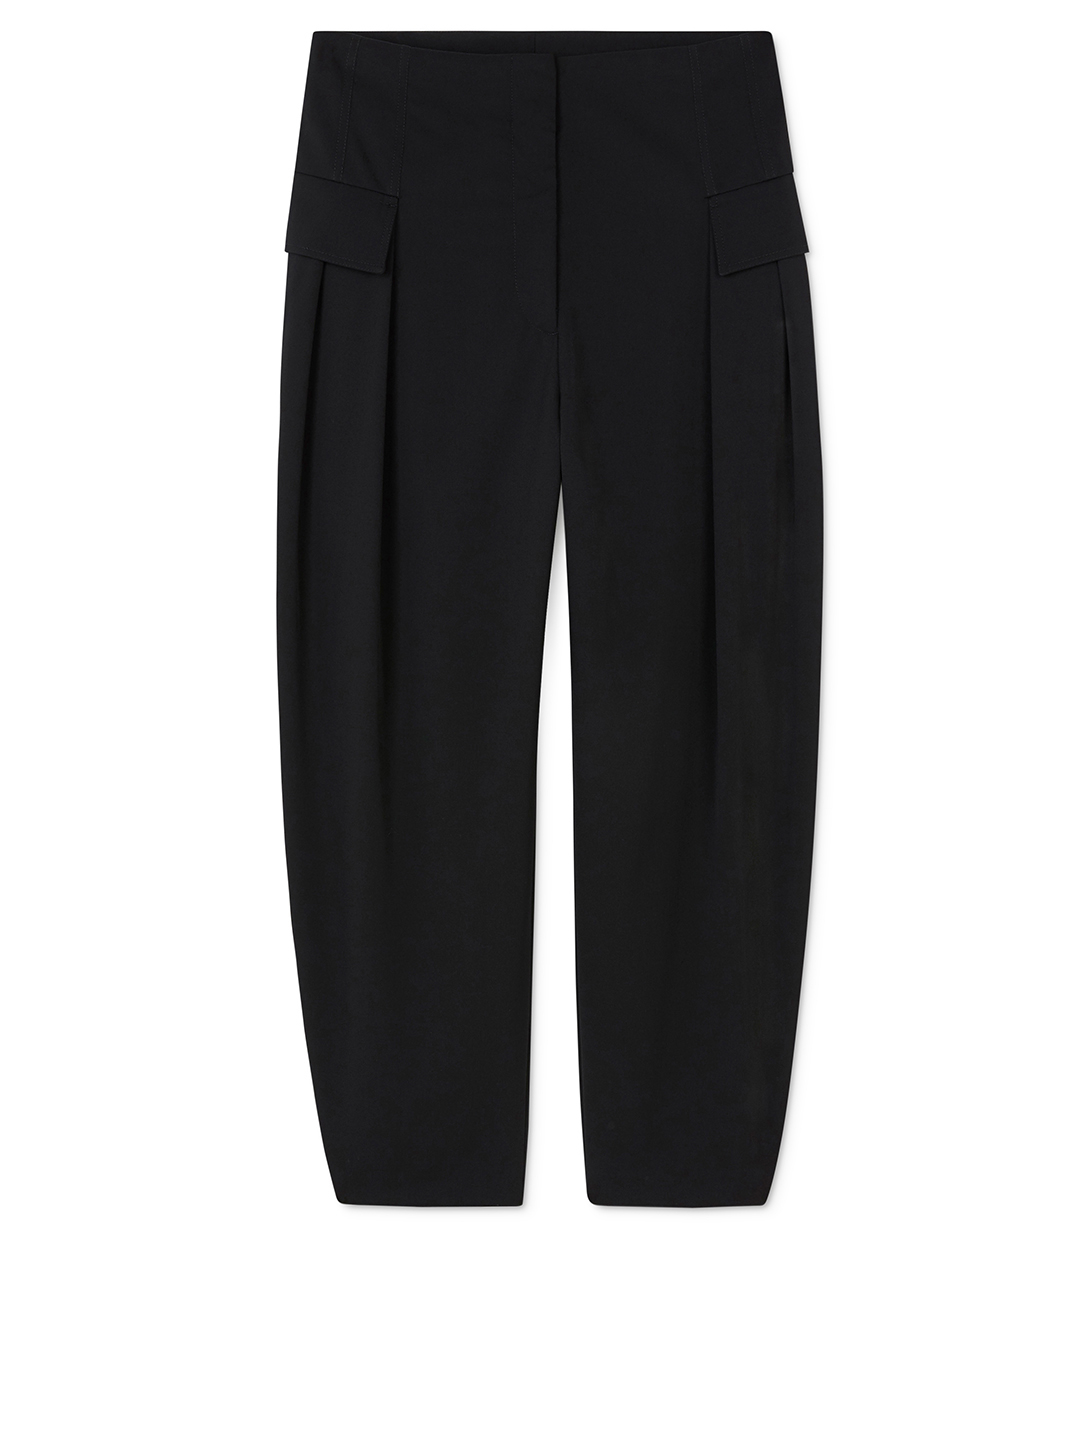 STELLA MCCARTNEY Wool Stretch Pants With Flap Pockets Women's Black